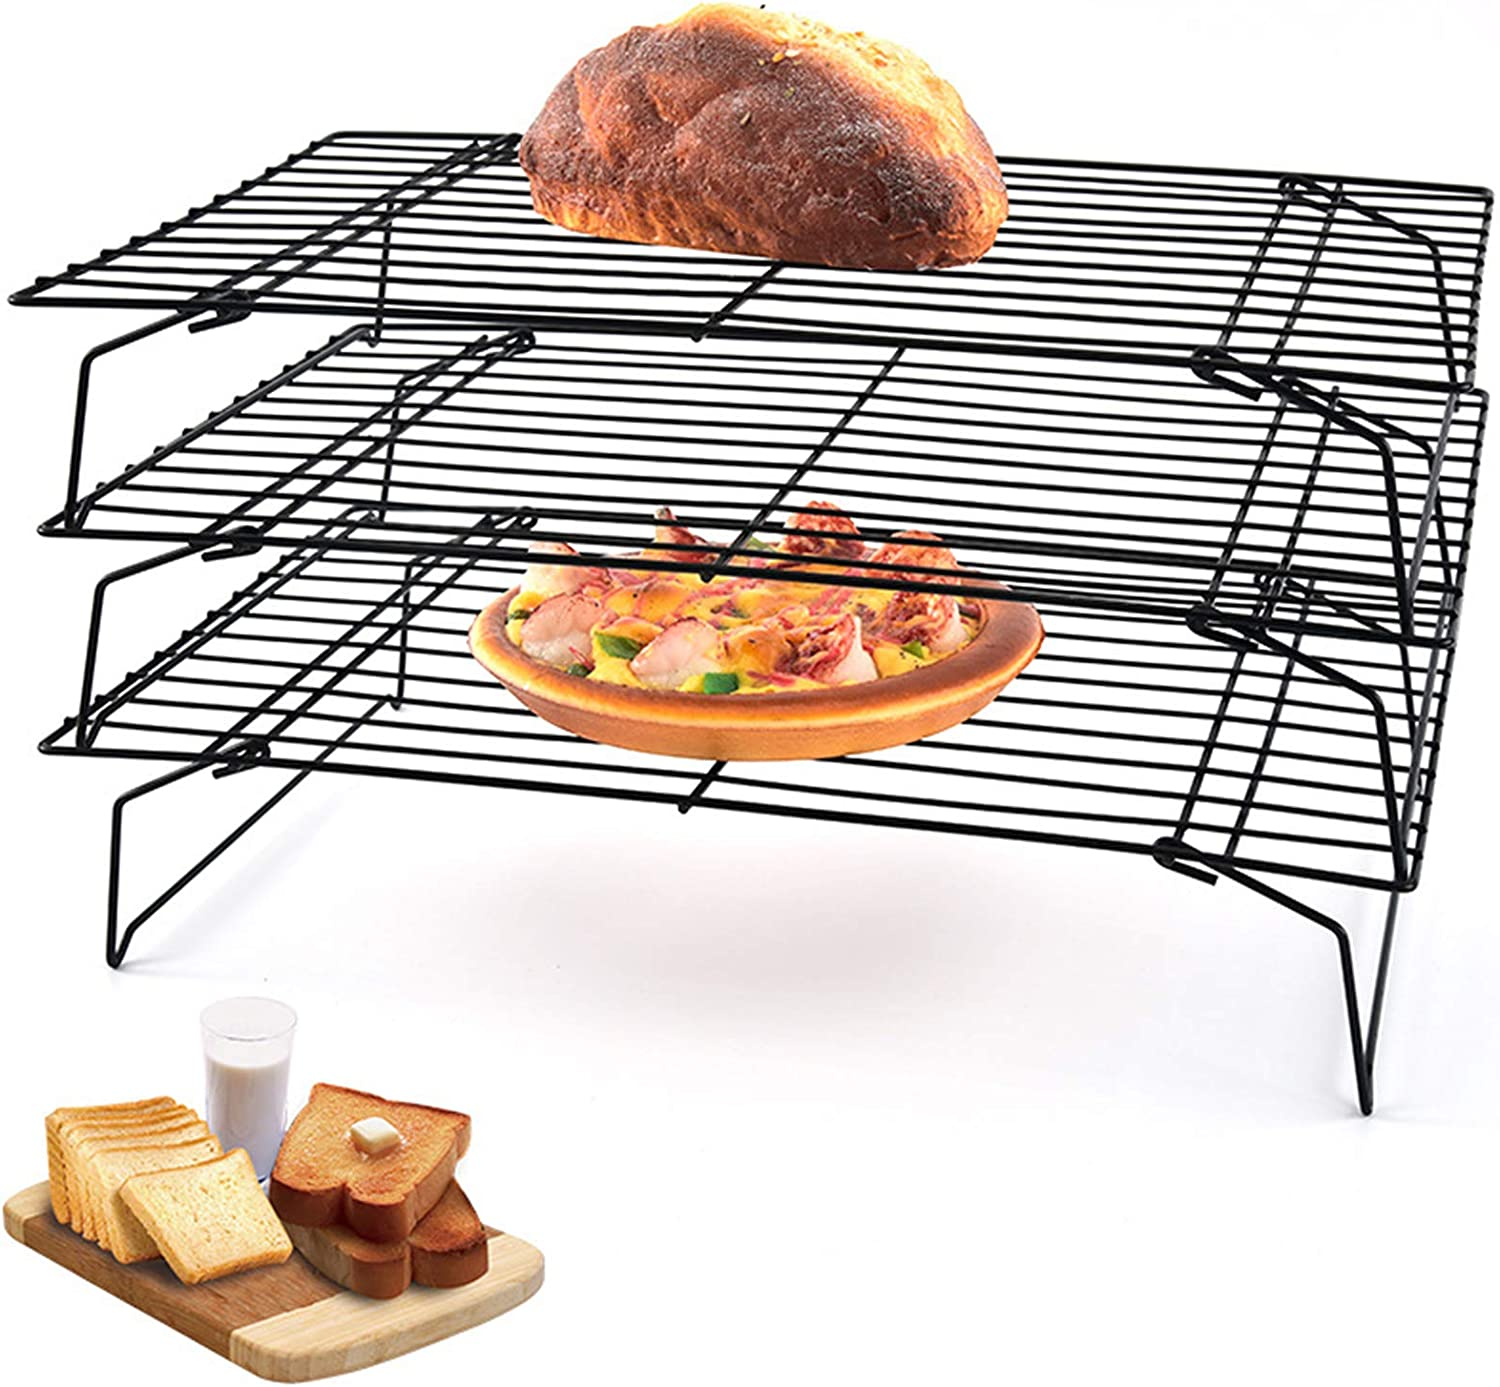 3-Tier Stackable Cooling Rack for Cake, Pastry, Bread, Meat and More Cooling Roasting Cooking for Cookies Baking,15.7